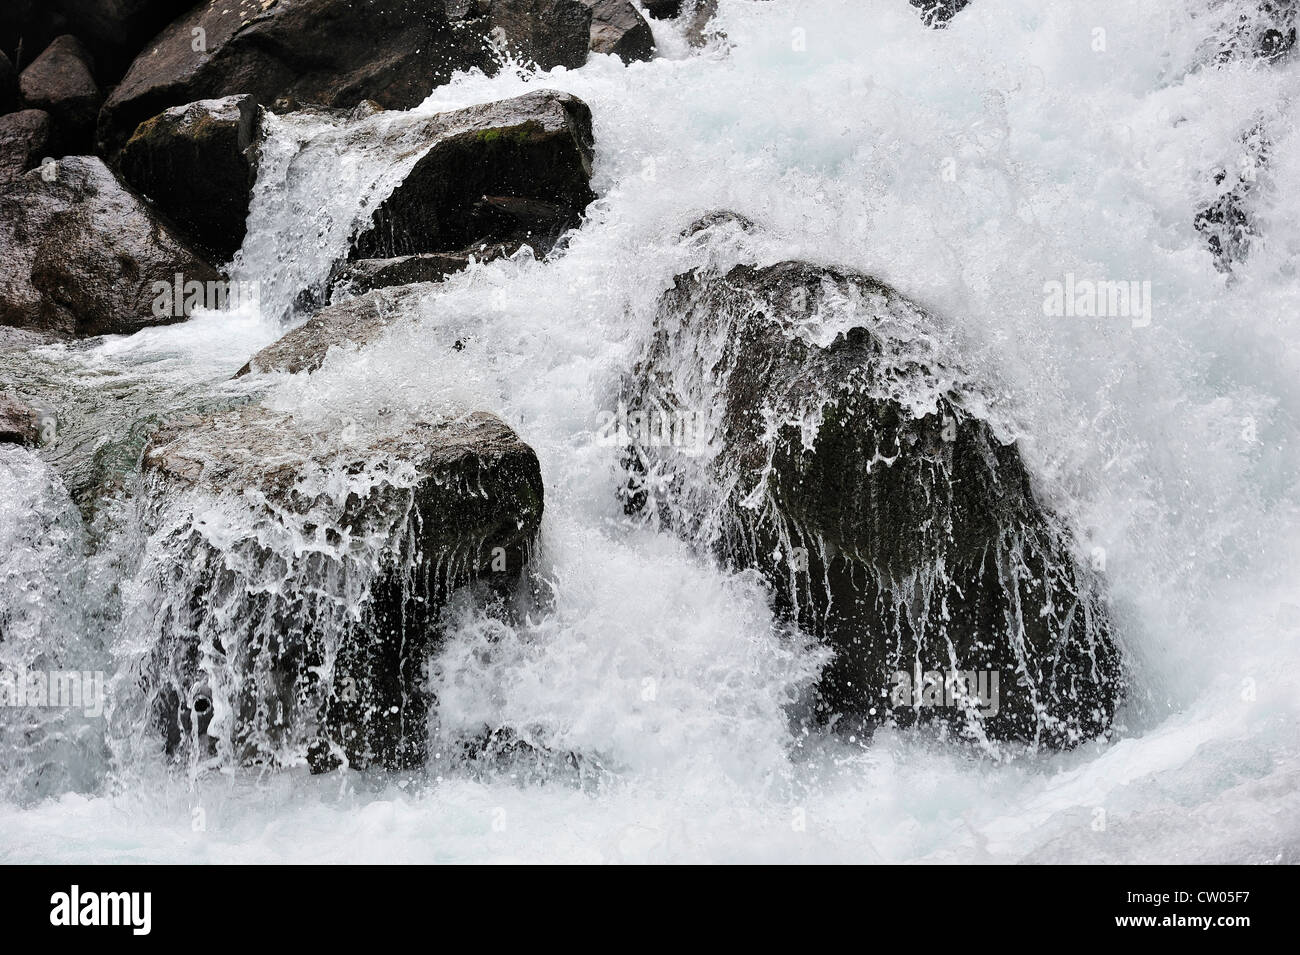 Boulders in waterfall in the Hautes-Pyrénées near Cauterets, Pyrenees, France Stock Photo